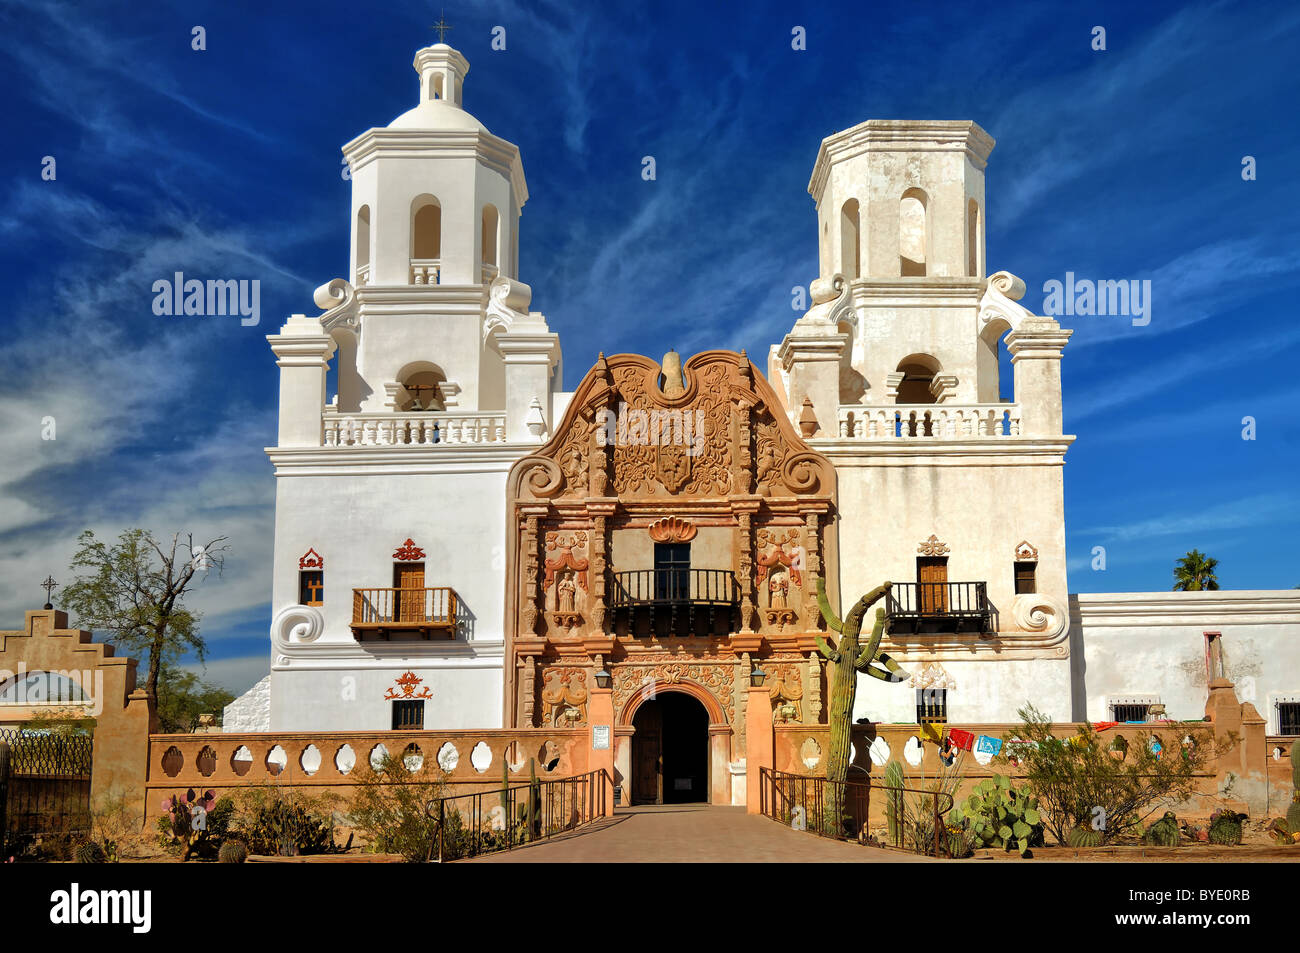 San Xavier del Bac is a Spanish Catholic Mission located about ten mile south of Tucson, Arizona, USA. - Stock Image